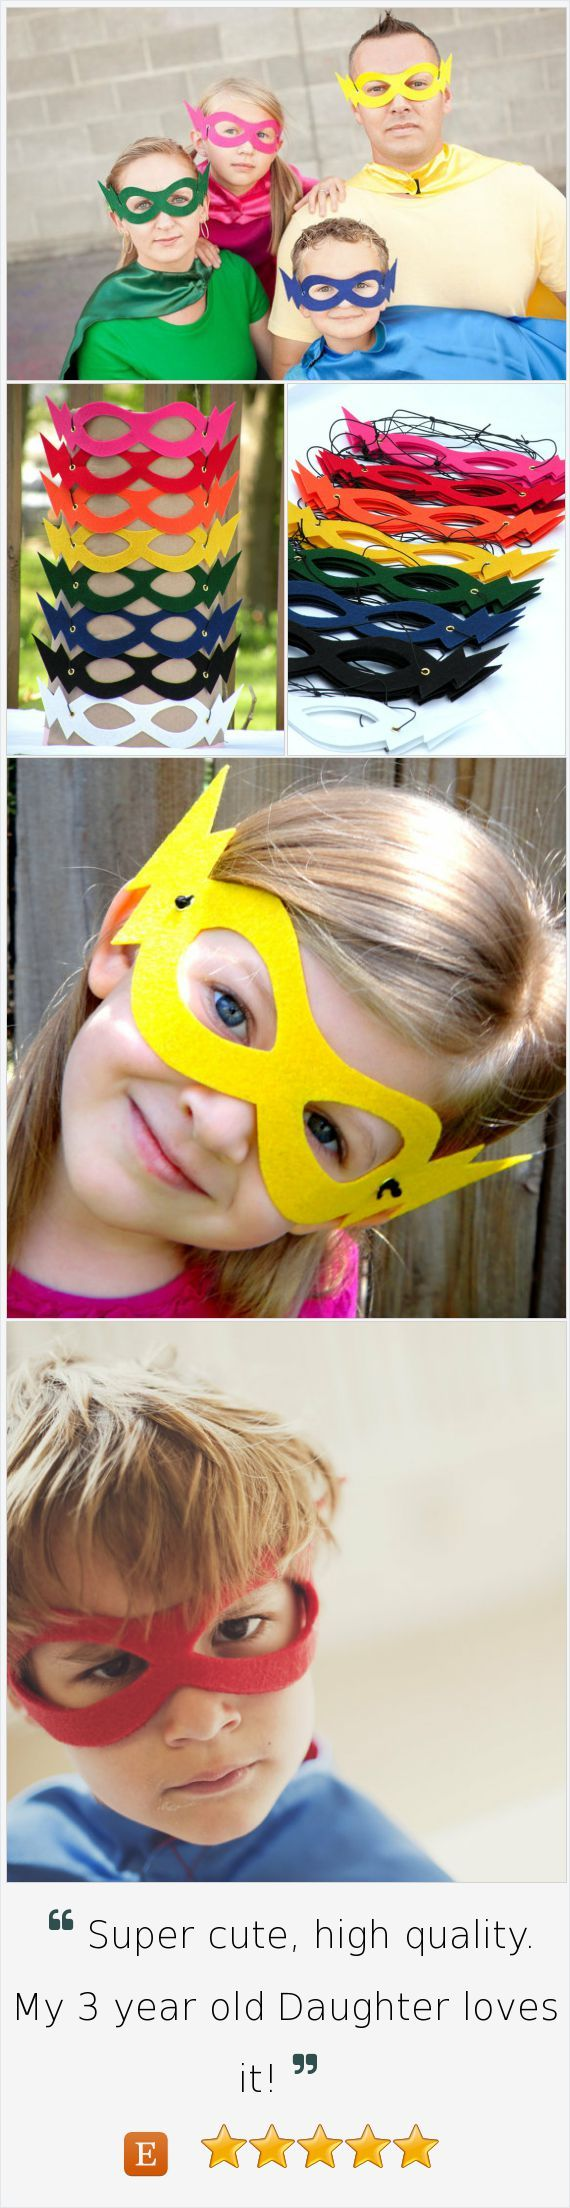 100 Hero Masks-Super hero party favors - 9 colors-Bulk Super Hero Mask Party Favor Set